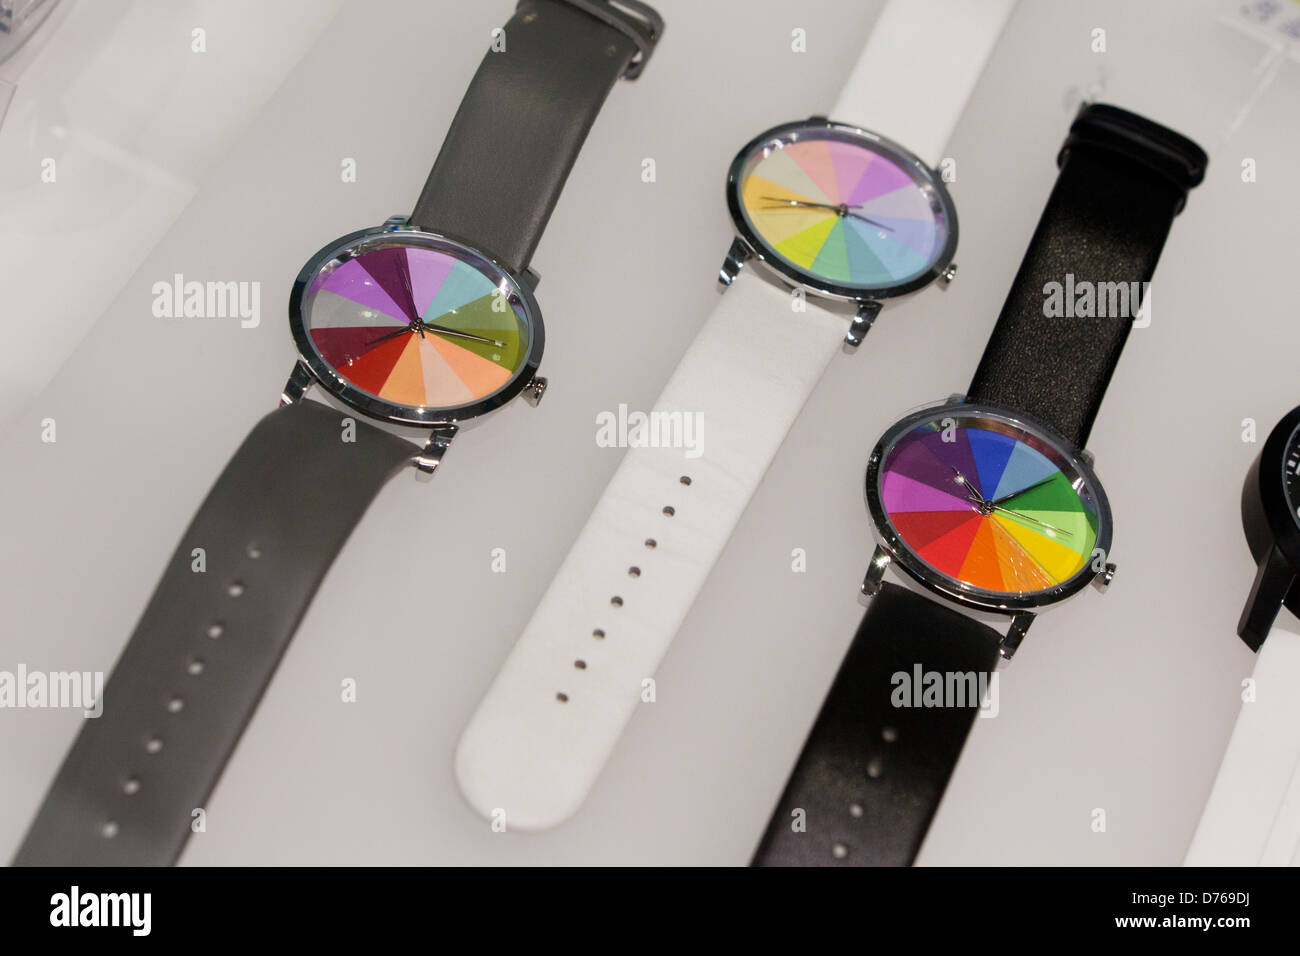 Rainbow face watches - Stock Image